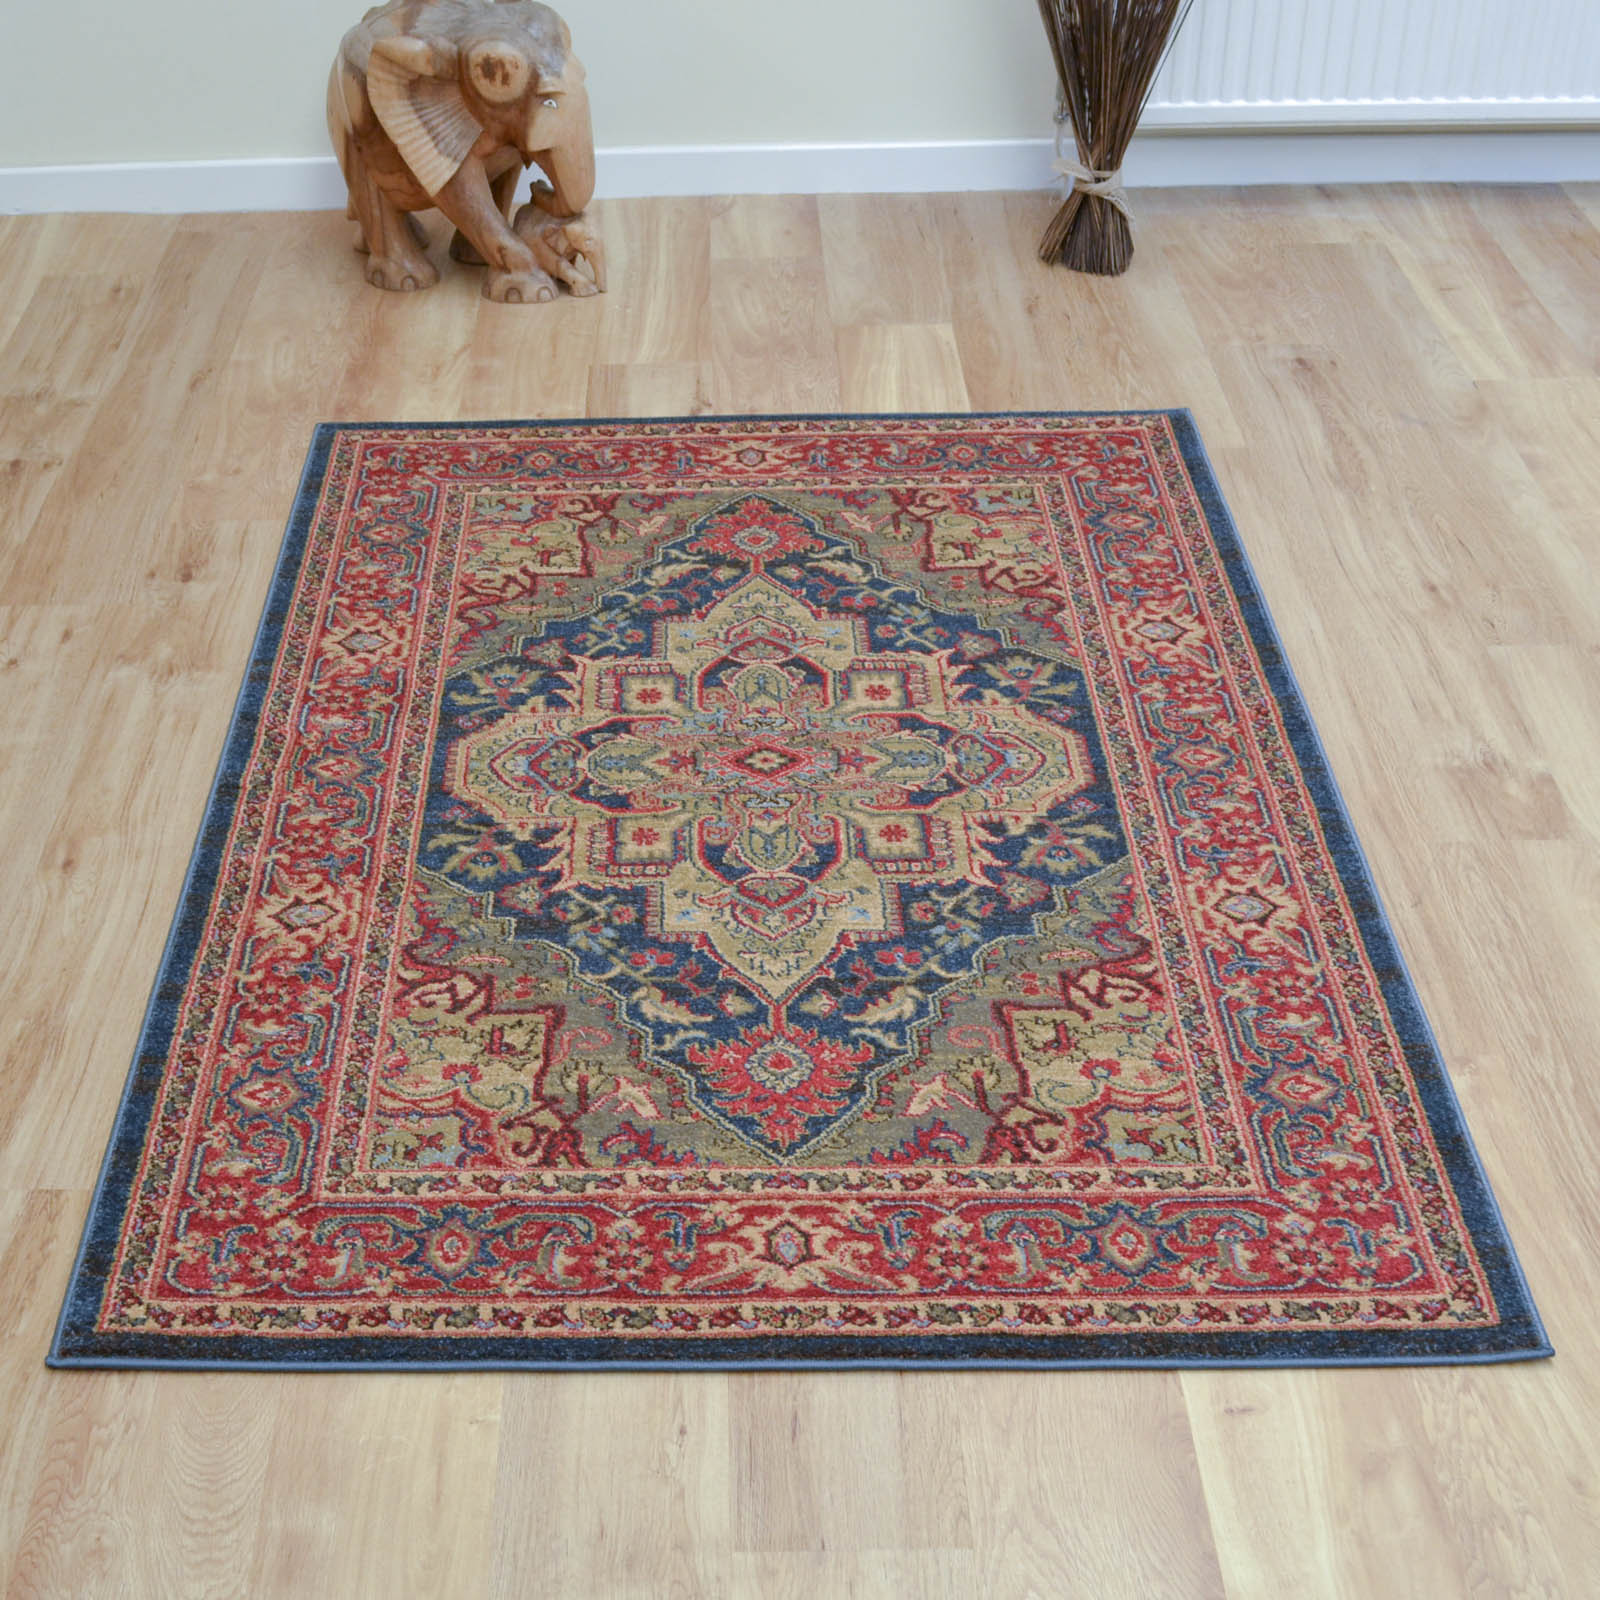 Ziegler Rugs 8788 in Dark Blue